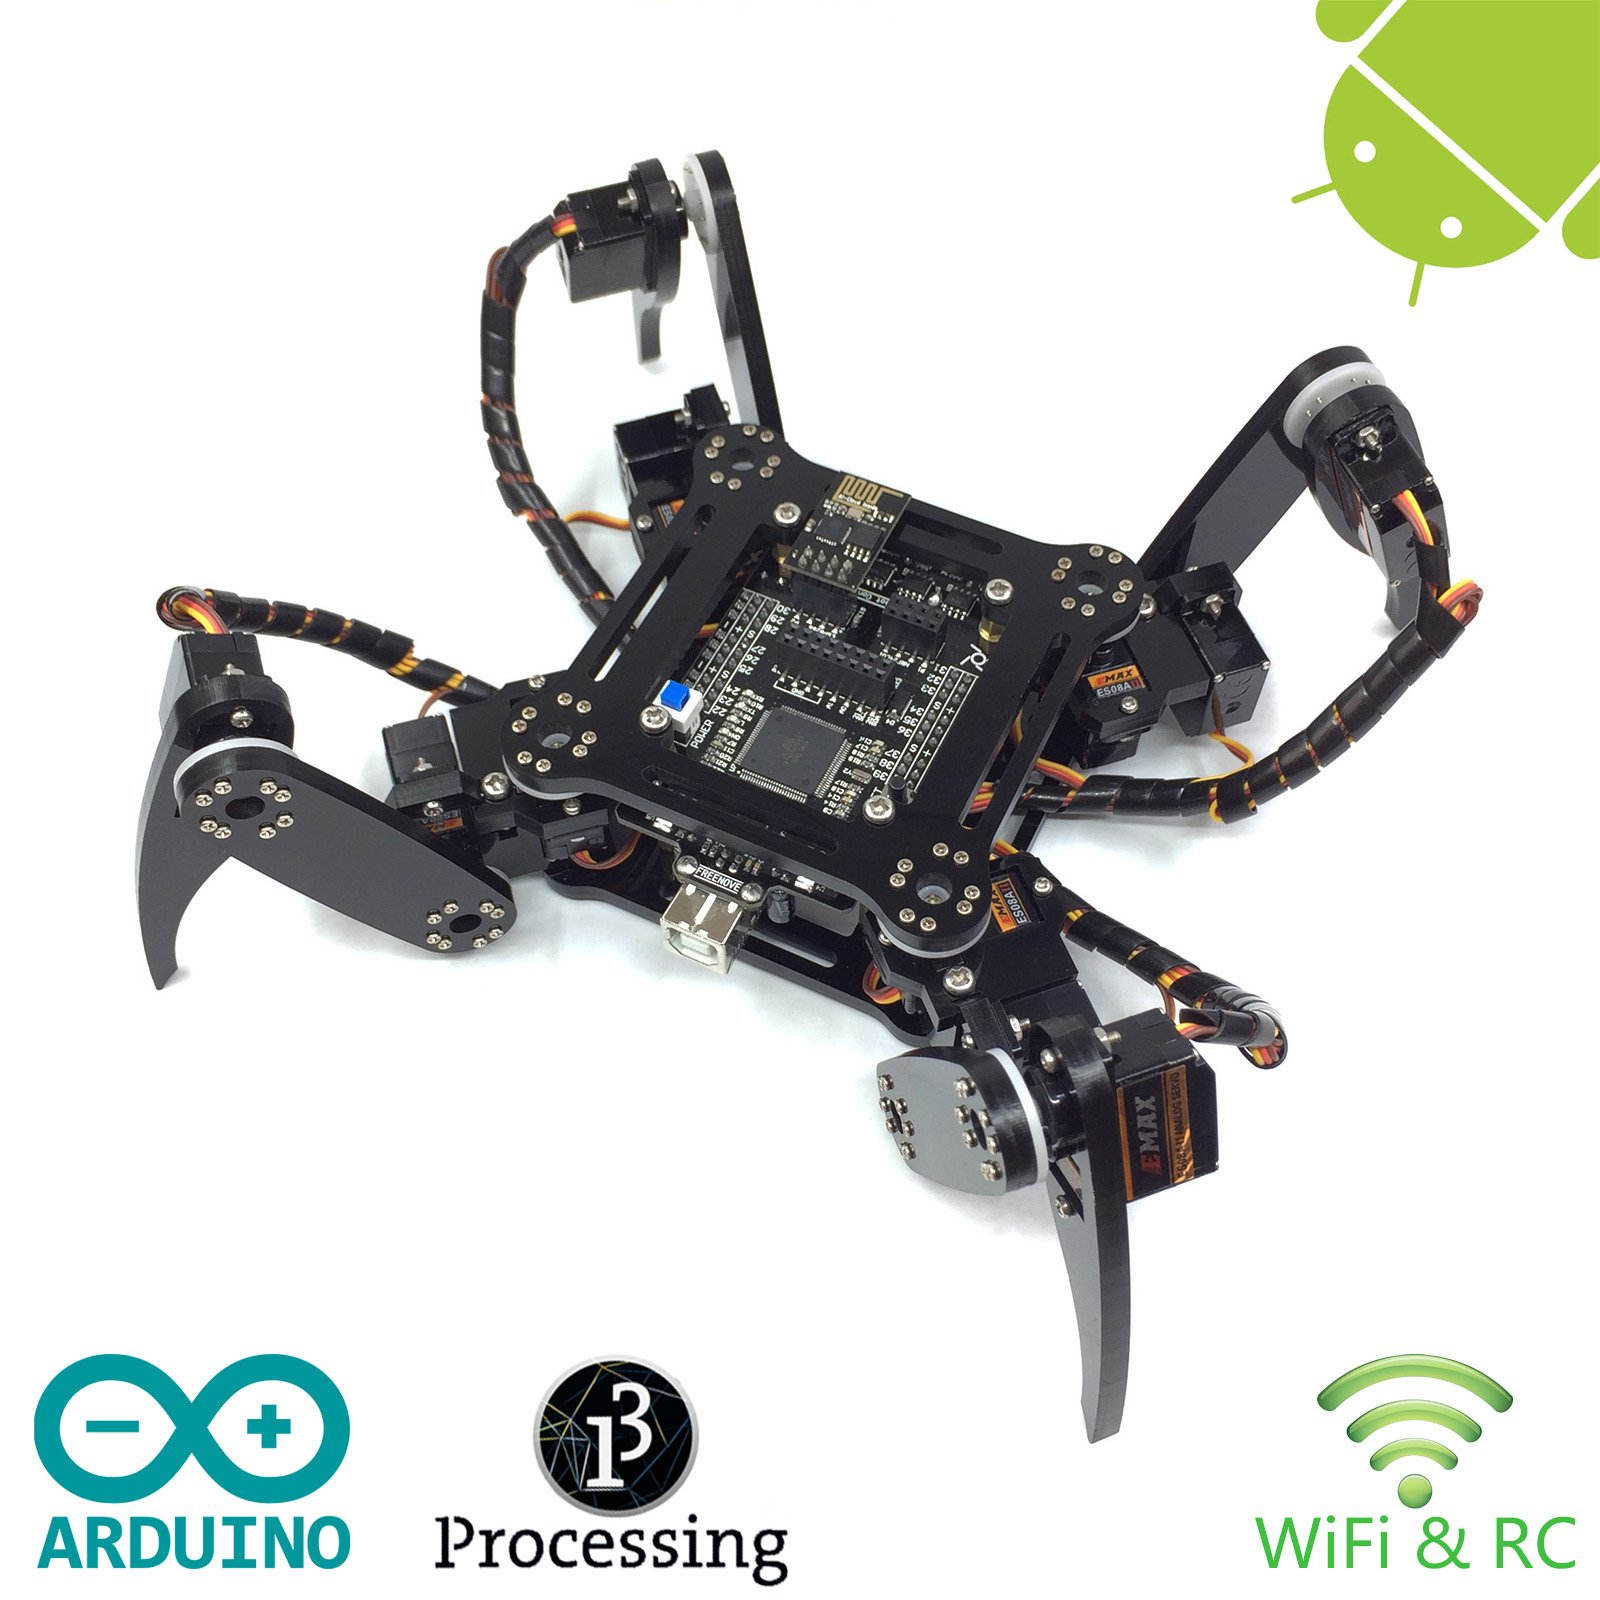 Freenove Quadruped Robot Kit | Arduino Robot Project | Spider Walking Crawling 4 Legged | Detailed Tutorial | Android APP | WiFi Wireless 2.4G Servo